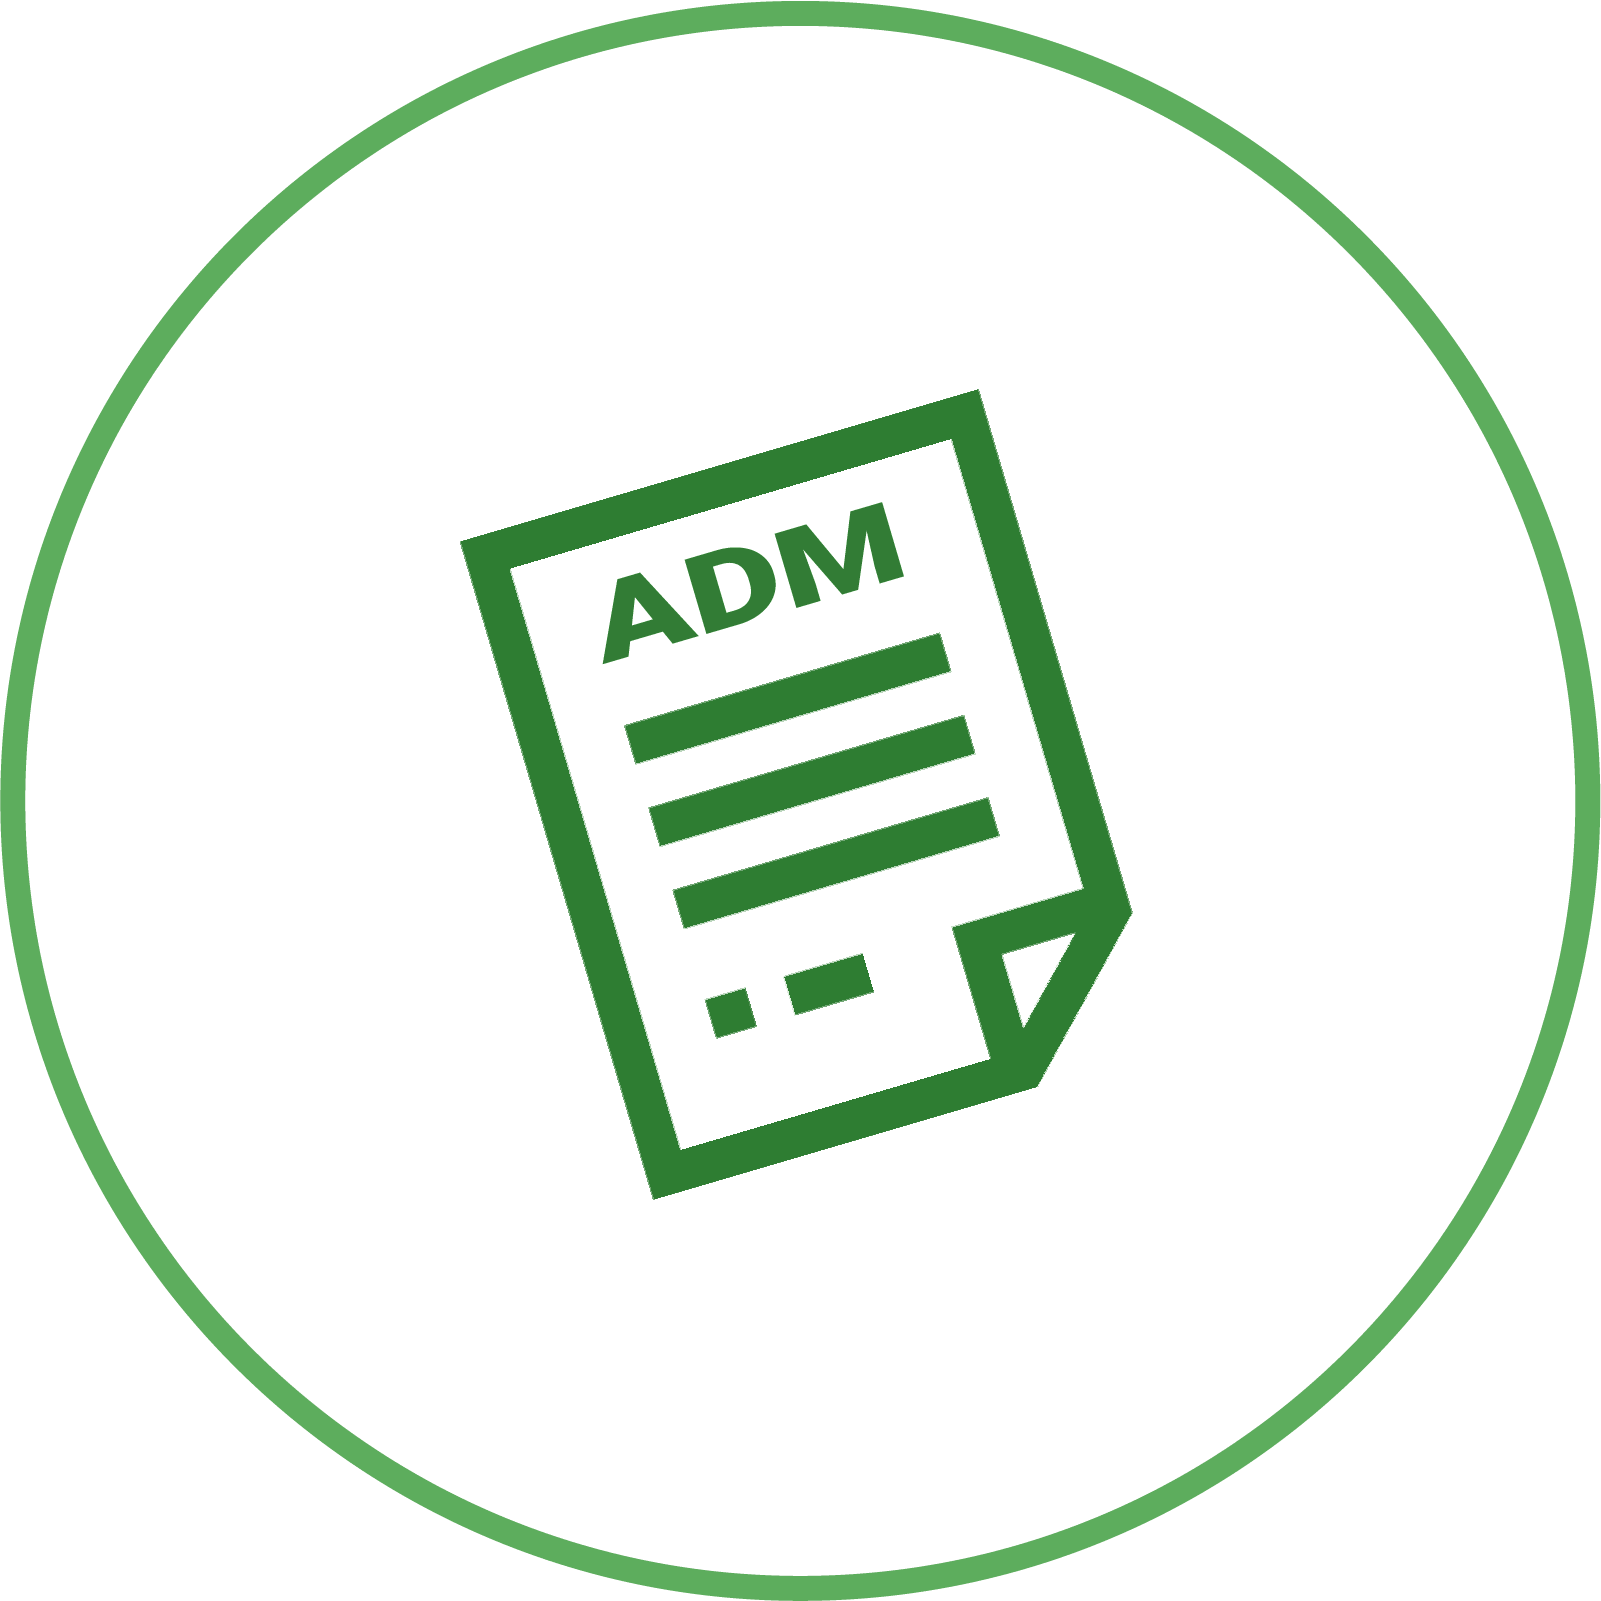 ADM policy